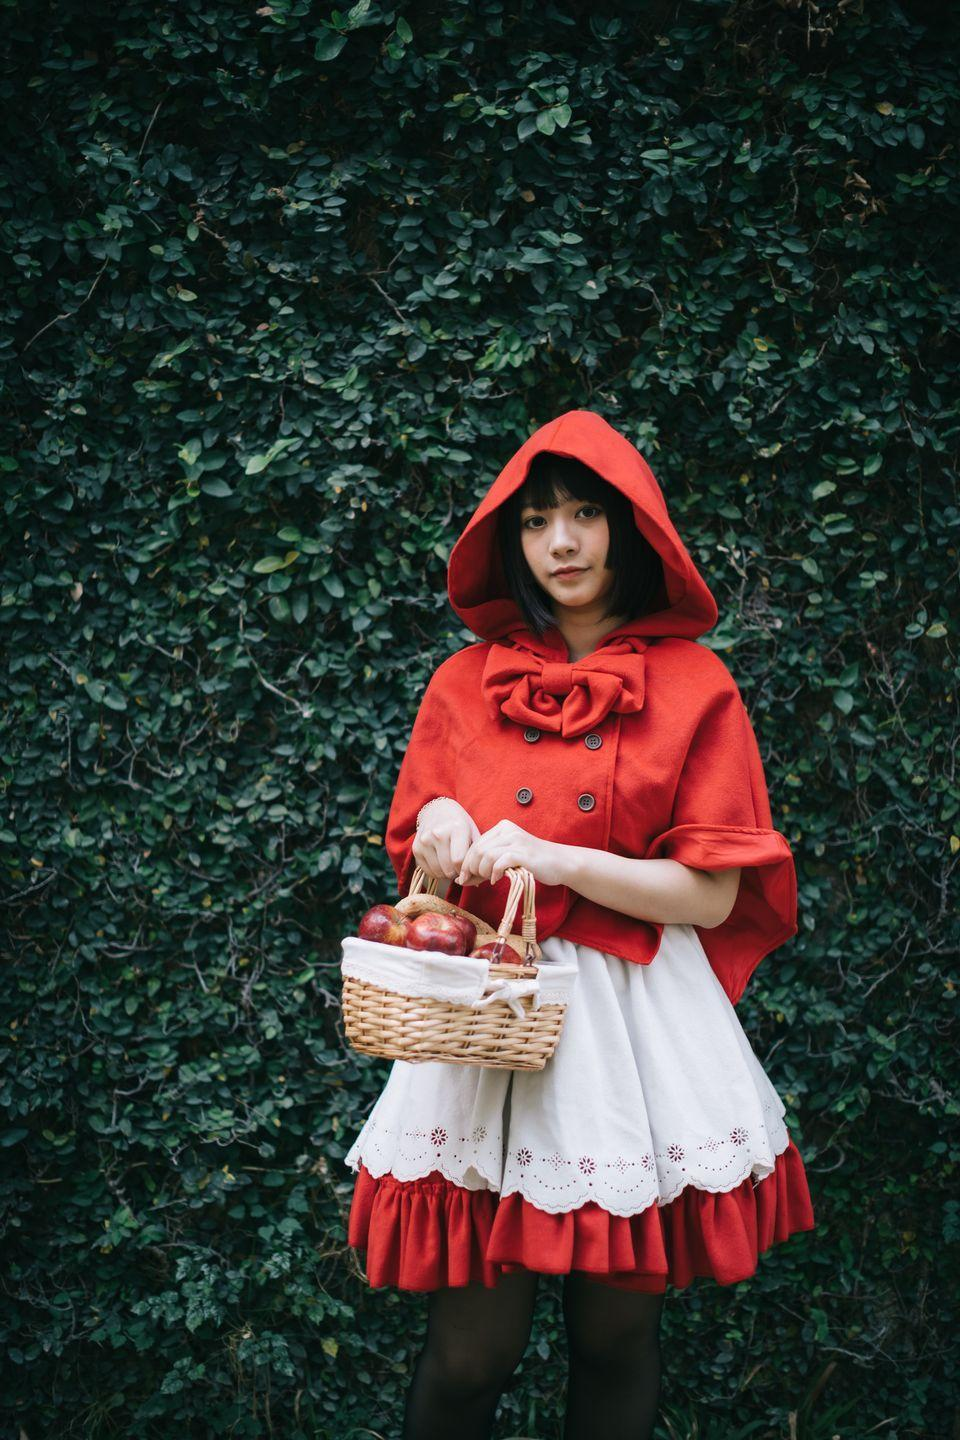 """<p>If you're feeling ready to take on the Big Bad Wolf, then simply layer a red hooded poncho over a red dress to become Little Red Riding Hood. Don't forget your basket of goodies!</p><p><a class=""""link rapid-noclick-resp"""" href=""""https://www.amazon.com/SUNNYME-Womens-Ponchos-Knitted-Hoodies/dp/B07K458832?tag=syn-yahoo-20&ascsubtag=%5Bartid%7C10070.g.490%5Bsrc%7Cyahoo-us"""" rel=""""nofollow noopener"""" target=""""_blank"""" data-ylk=""""slk:SHOP RED HOODED PONCHOS"""">SHOP RED HOODED PONCHOS</a></p>"""